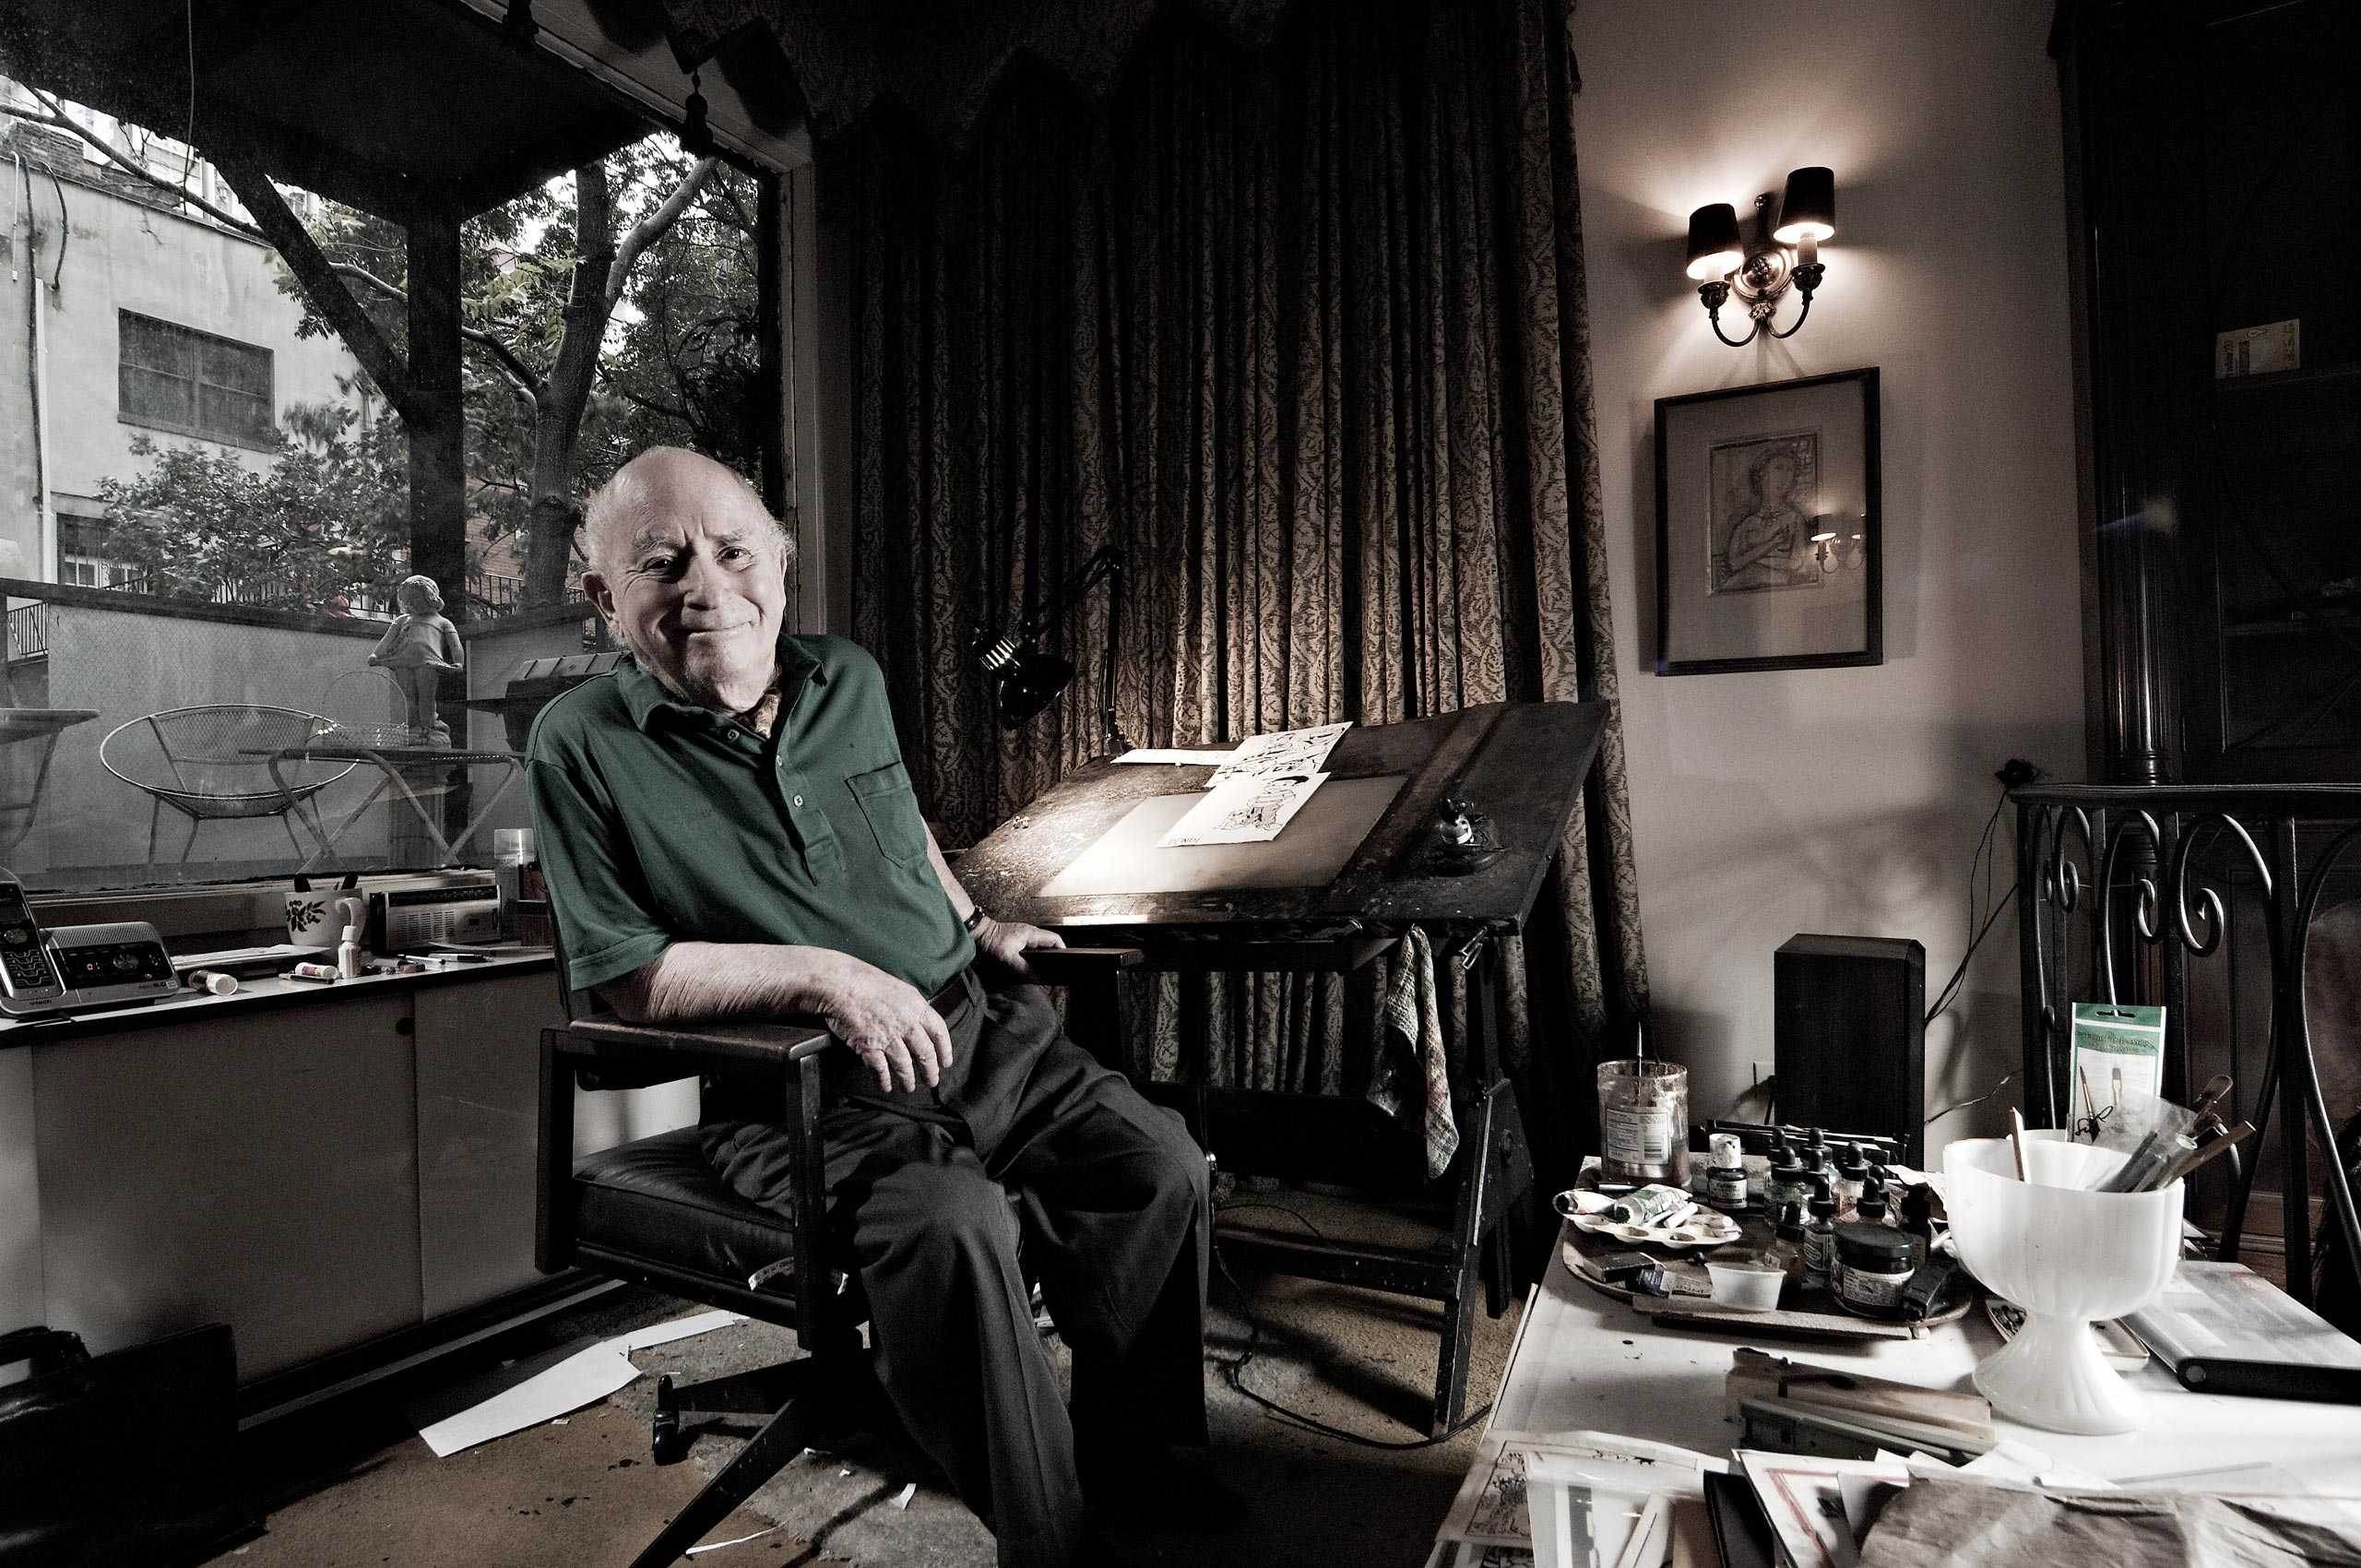 Cartoonist Irwin Hasen, Photographed by Photographer Greg Preston for The Artist Within portrait project